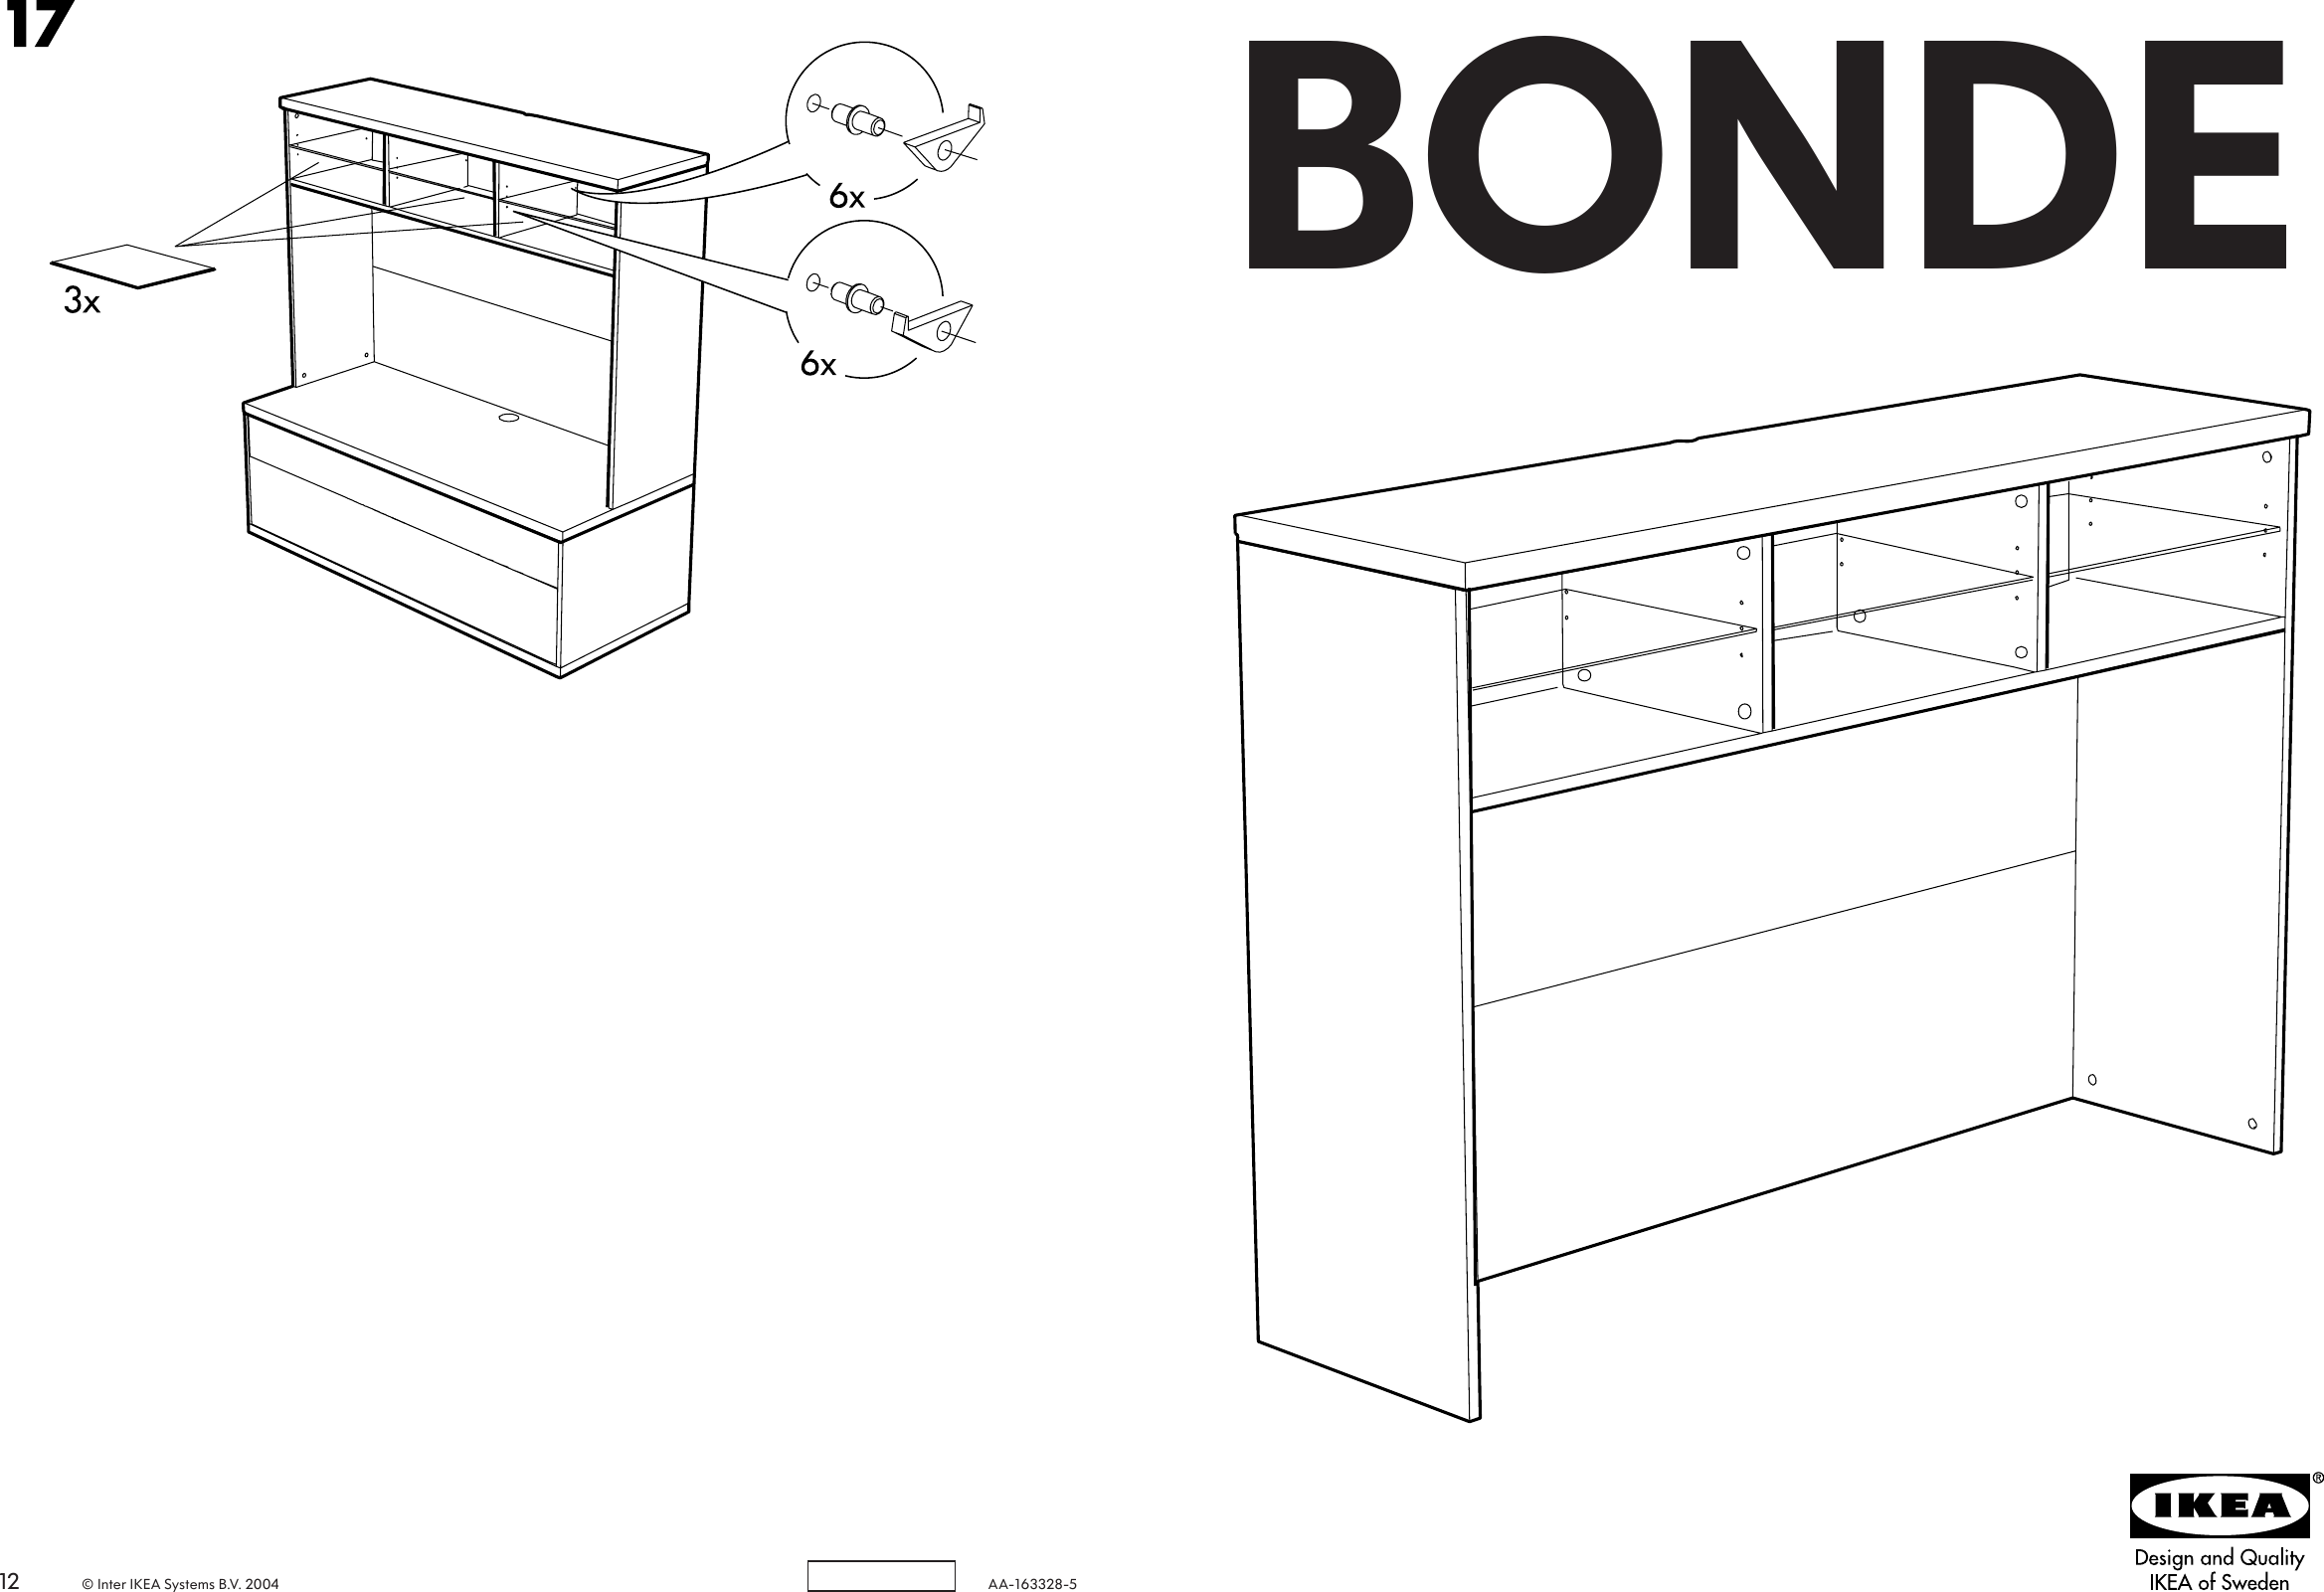 Page 1 of 6 - Ikea Ikea-Bonde-Add-On-For-Tv-Unit-57X40-Assembly-Instruction-3  Ikea-bonde-add-on-for-tv-unit-57x40-assembly-instruction